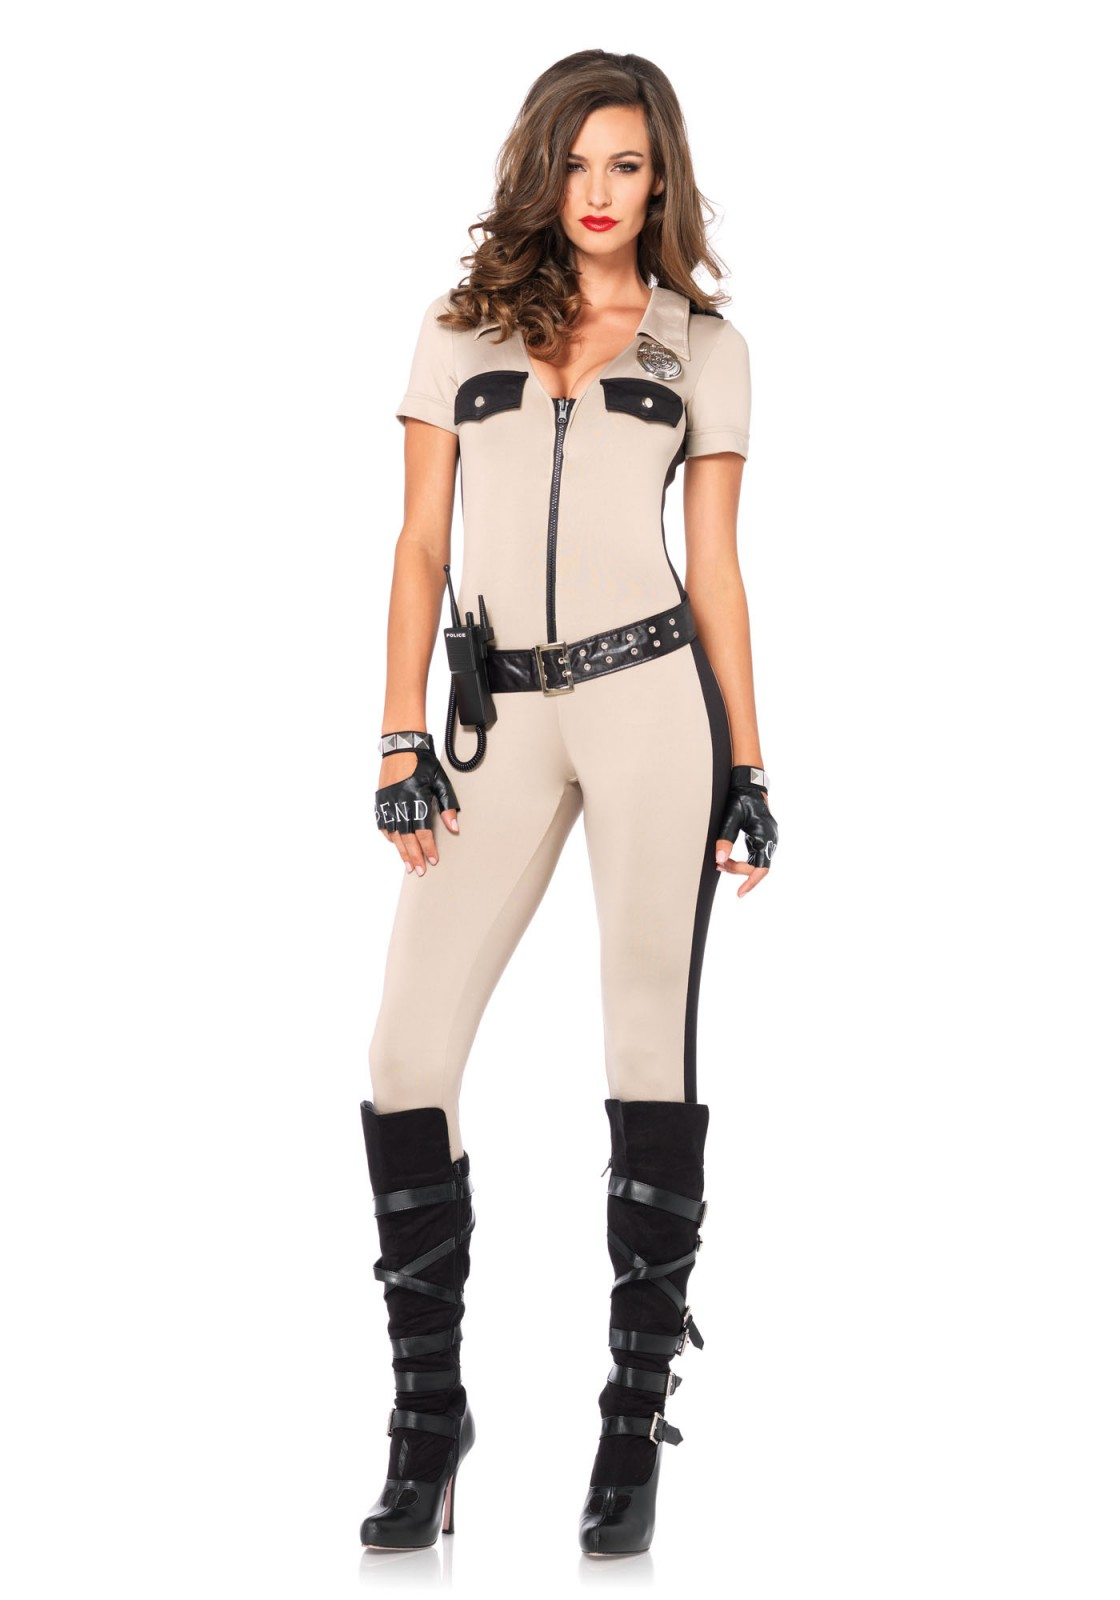 d74bd3807b04 4Pc. Officer Payne Costume Set With Lame Jumpsuit